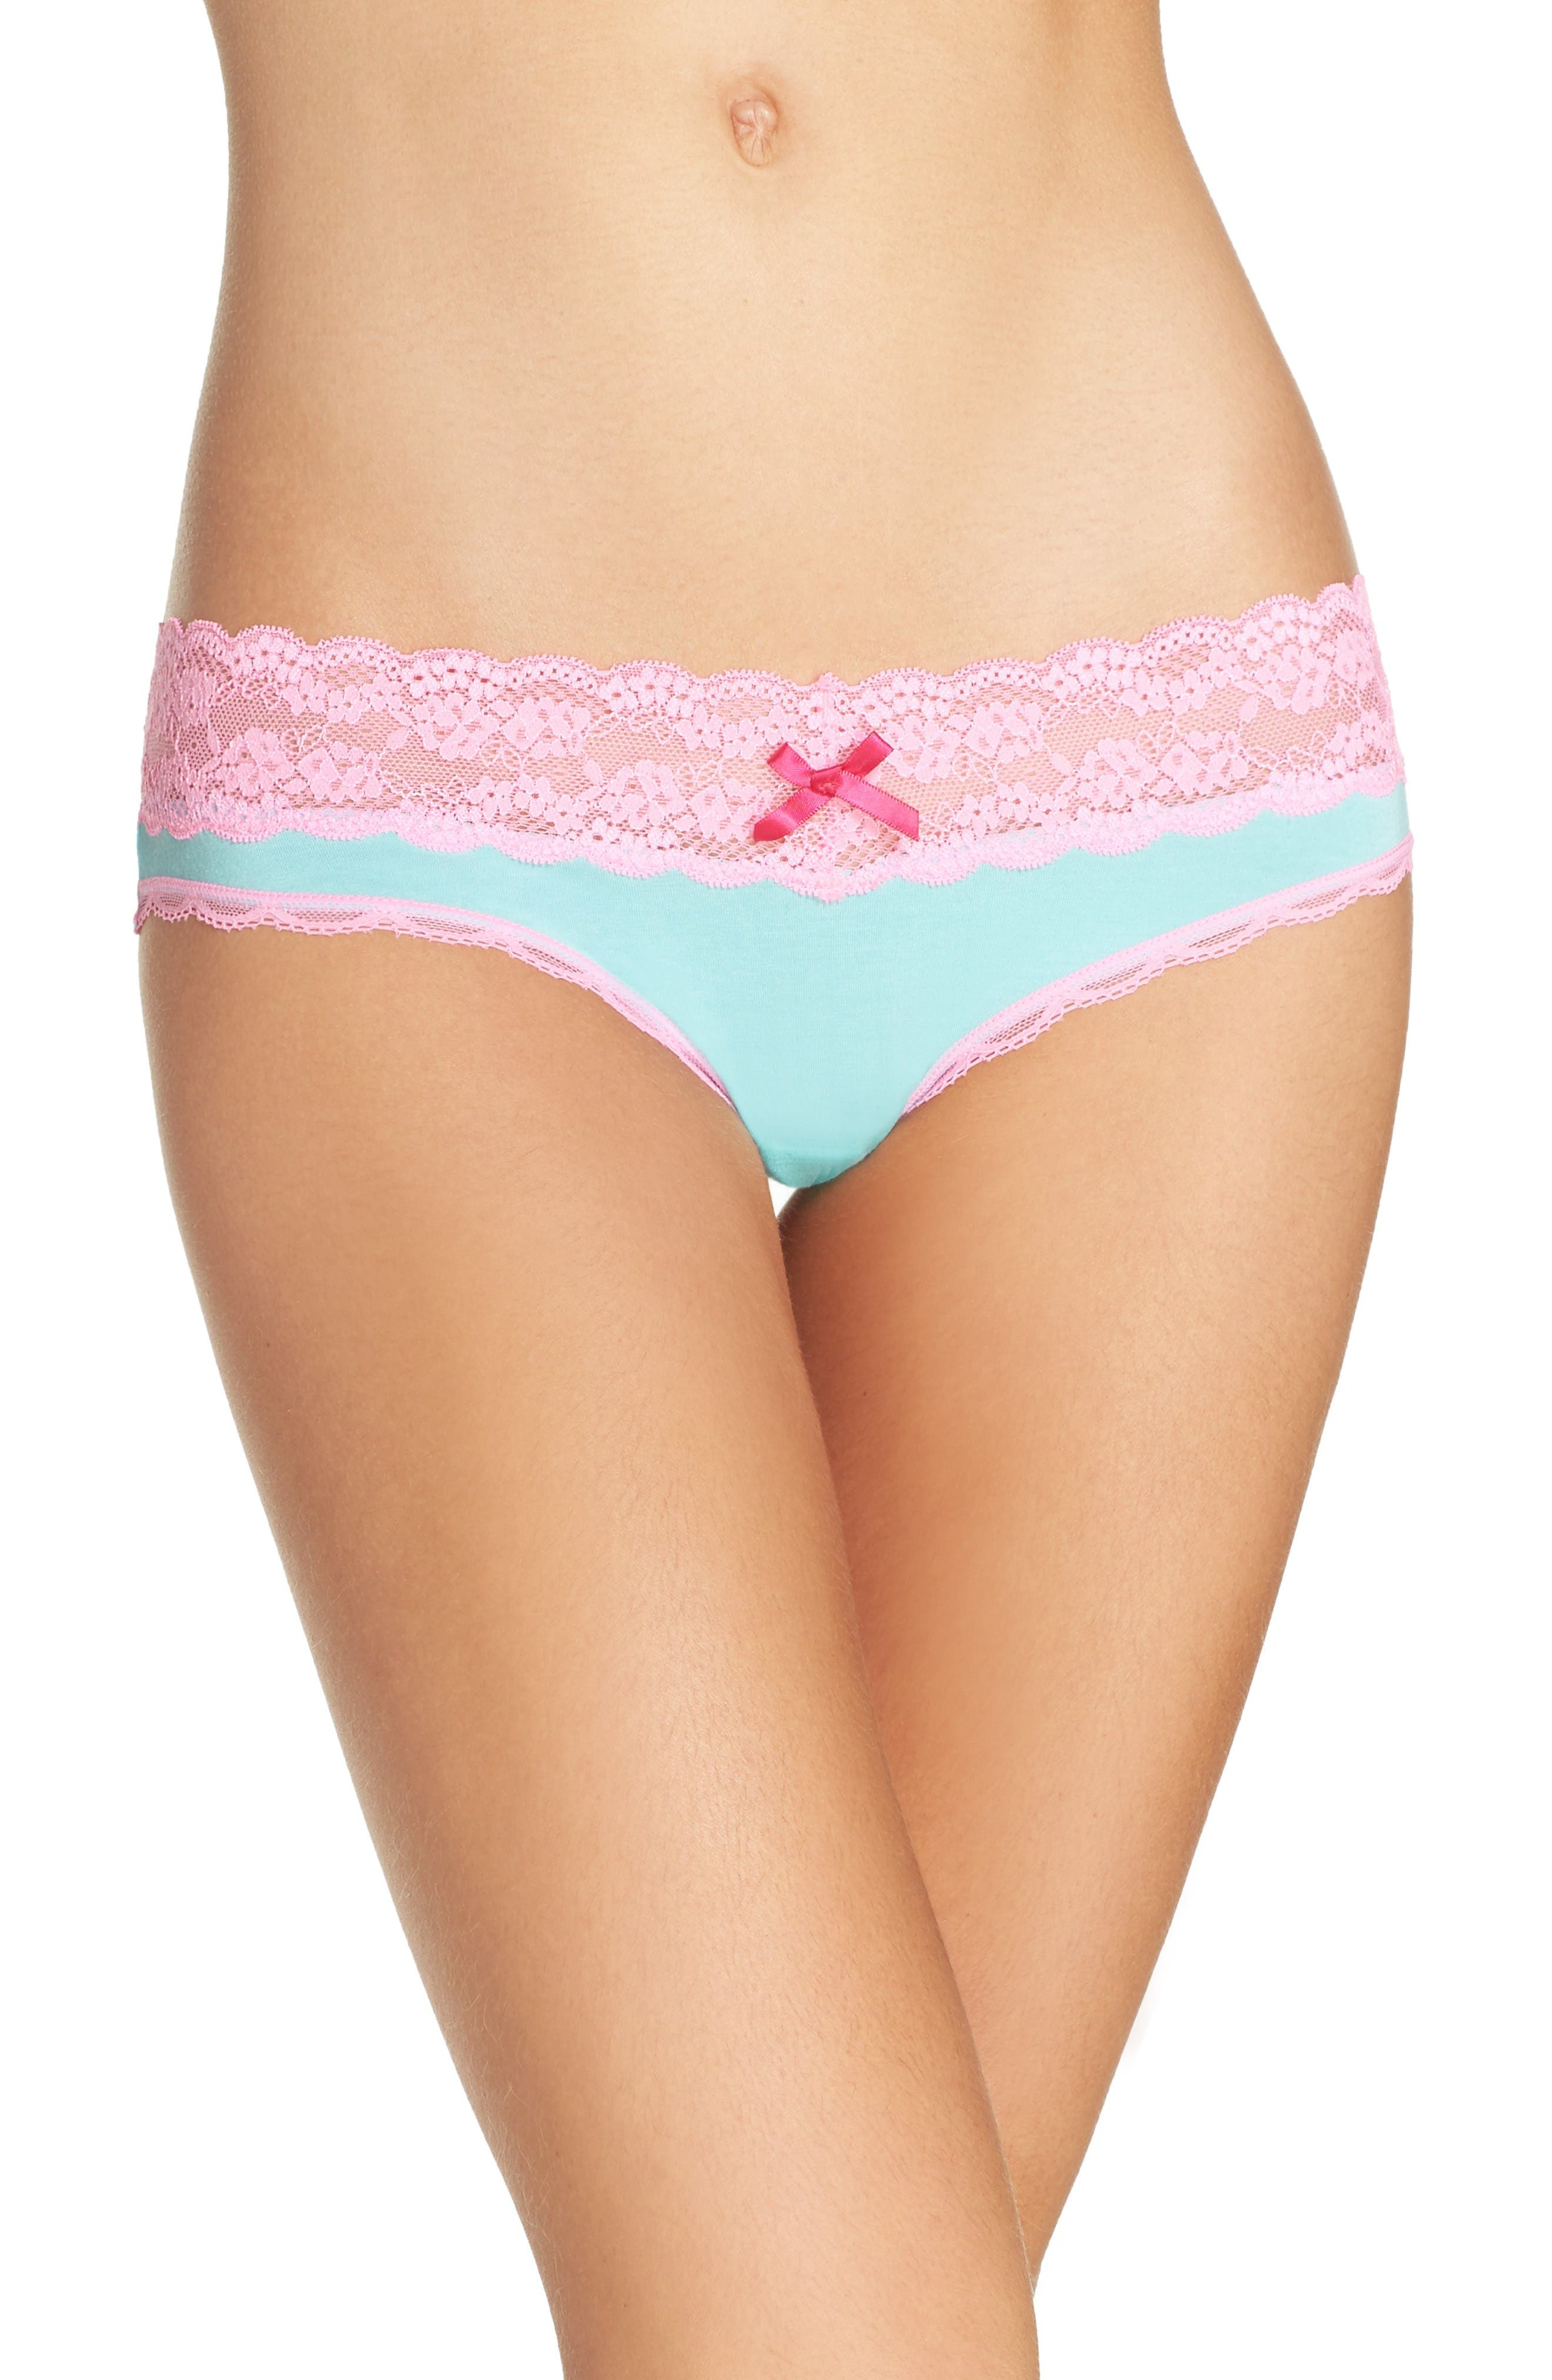 Alternate Image 1 Selected - Honeydew Intimates Lace Trim Low Rise Thong (3 for $33)